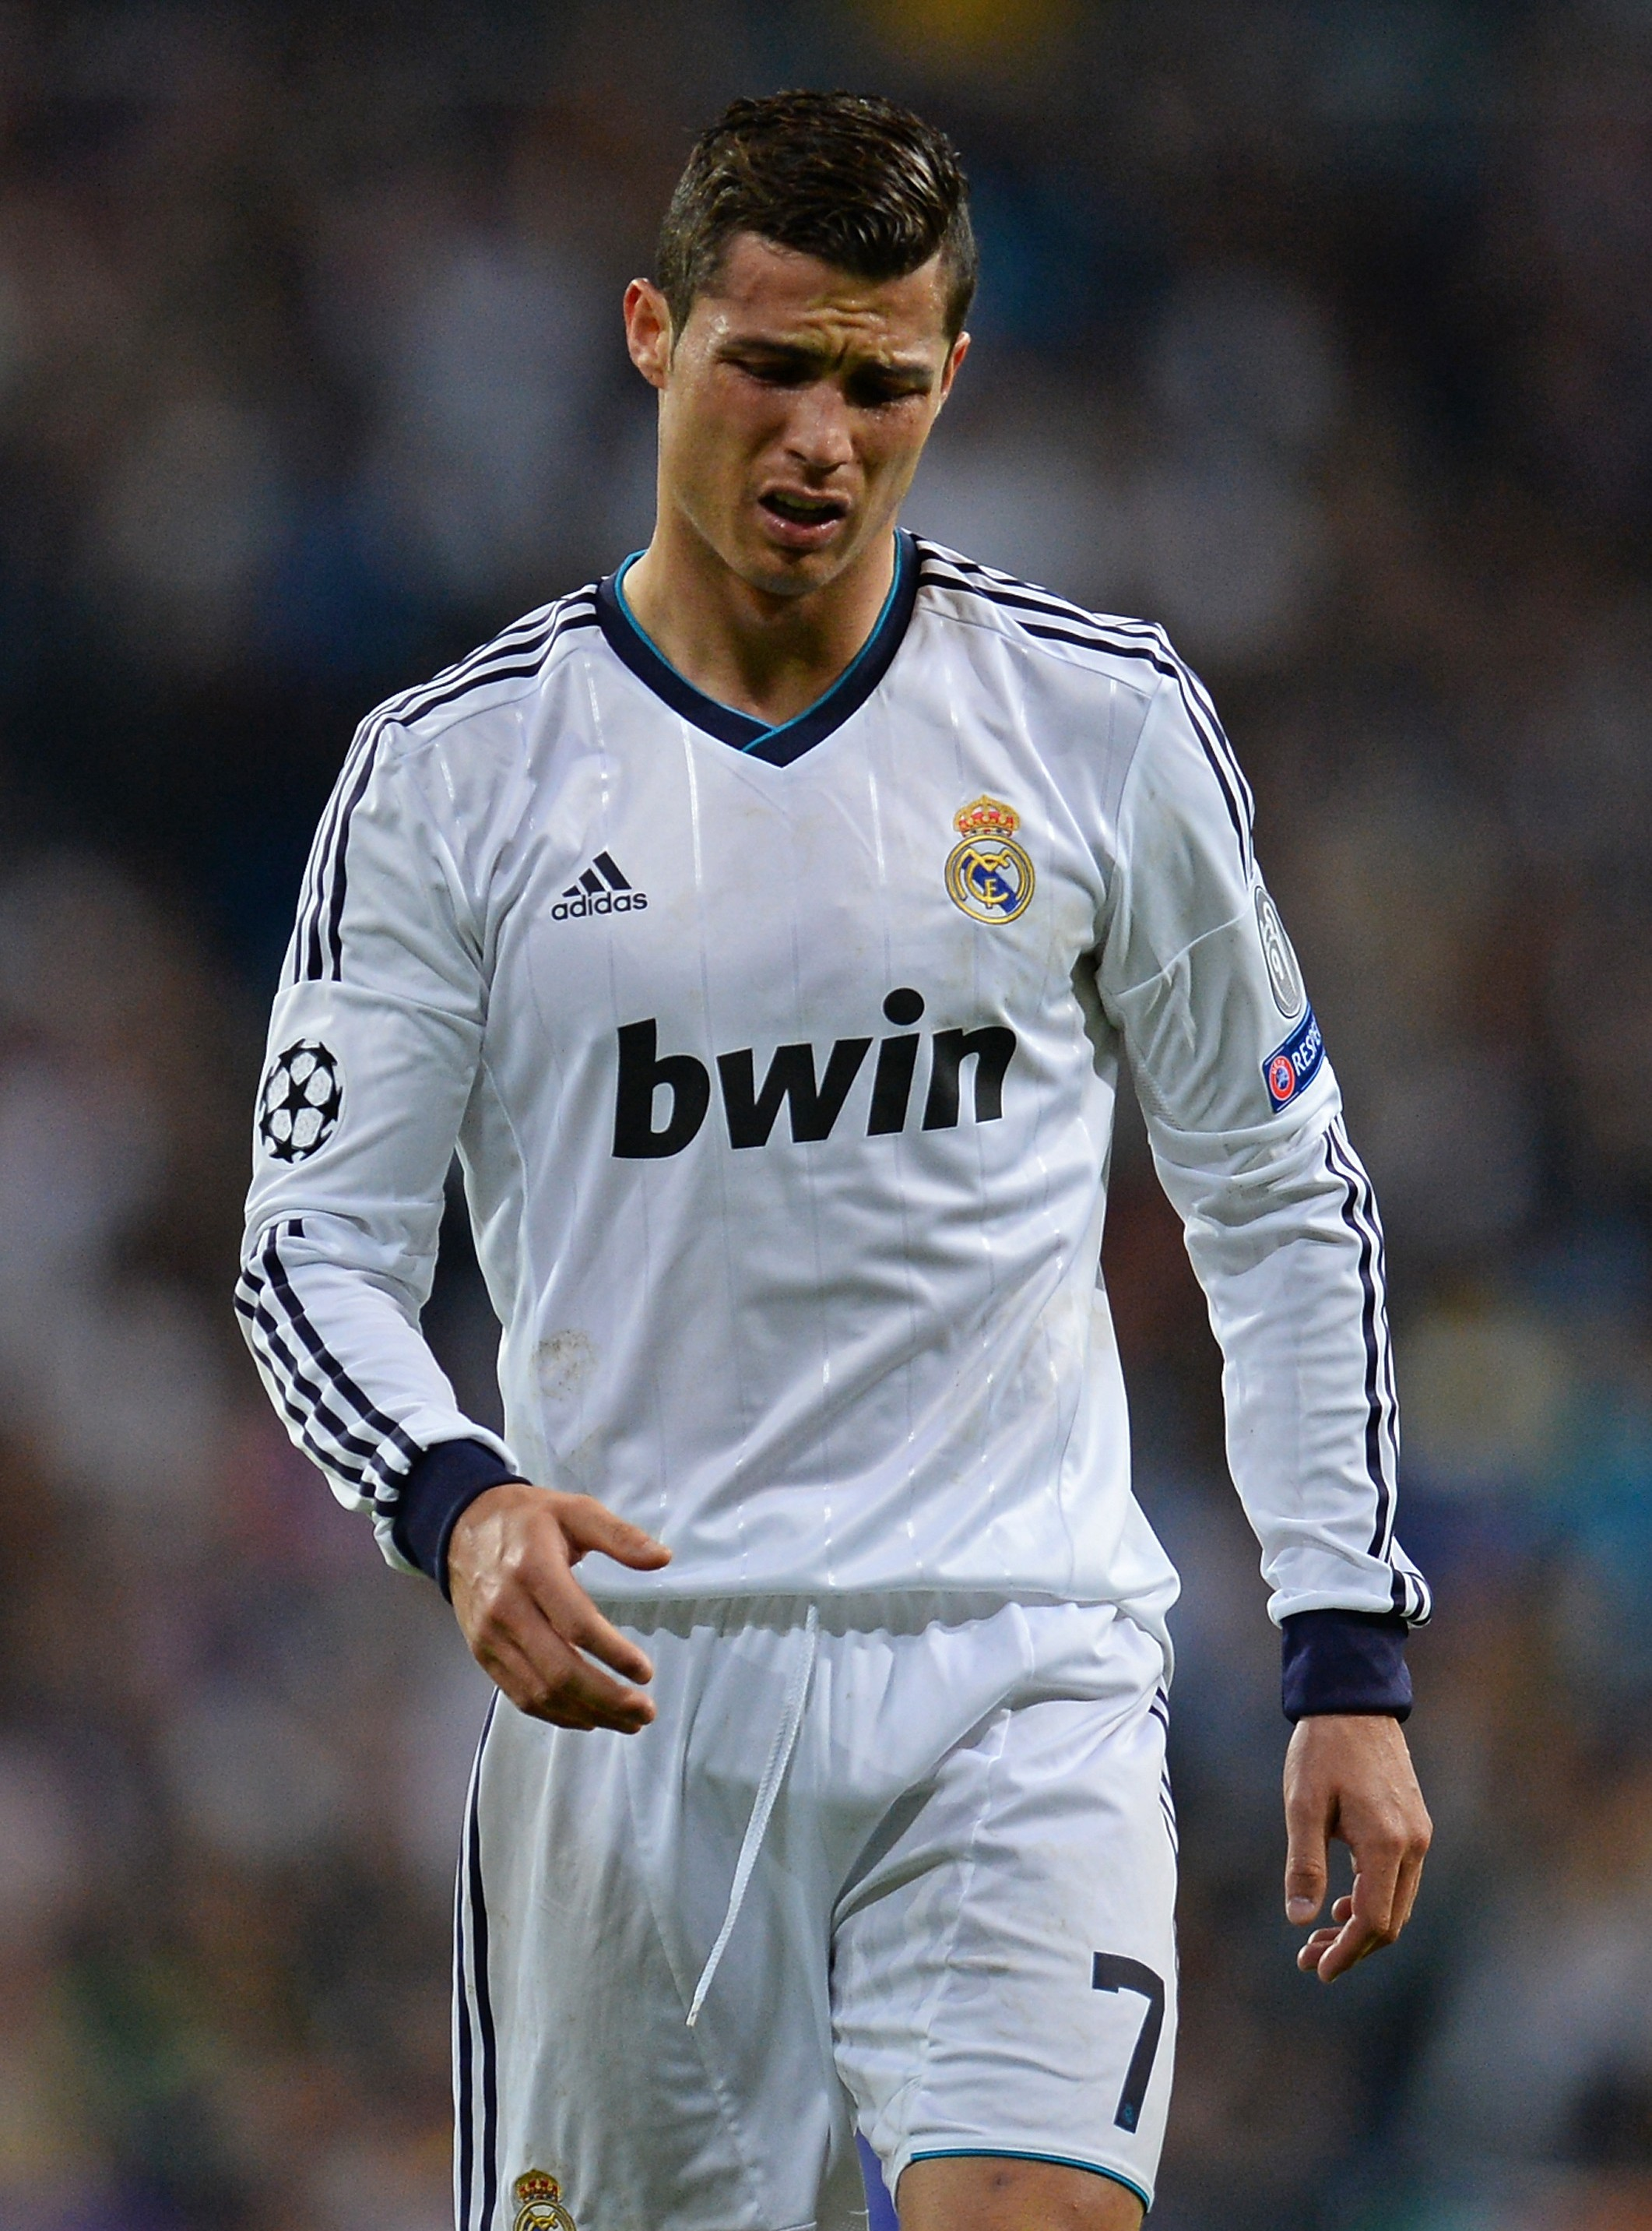 Cristiano Ronaldo's Real Madrid future will be decided by end of the month, says Florentino Perez